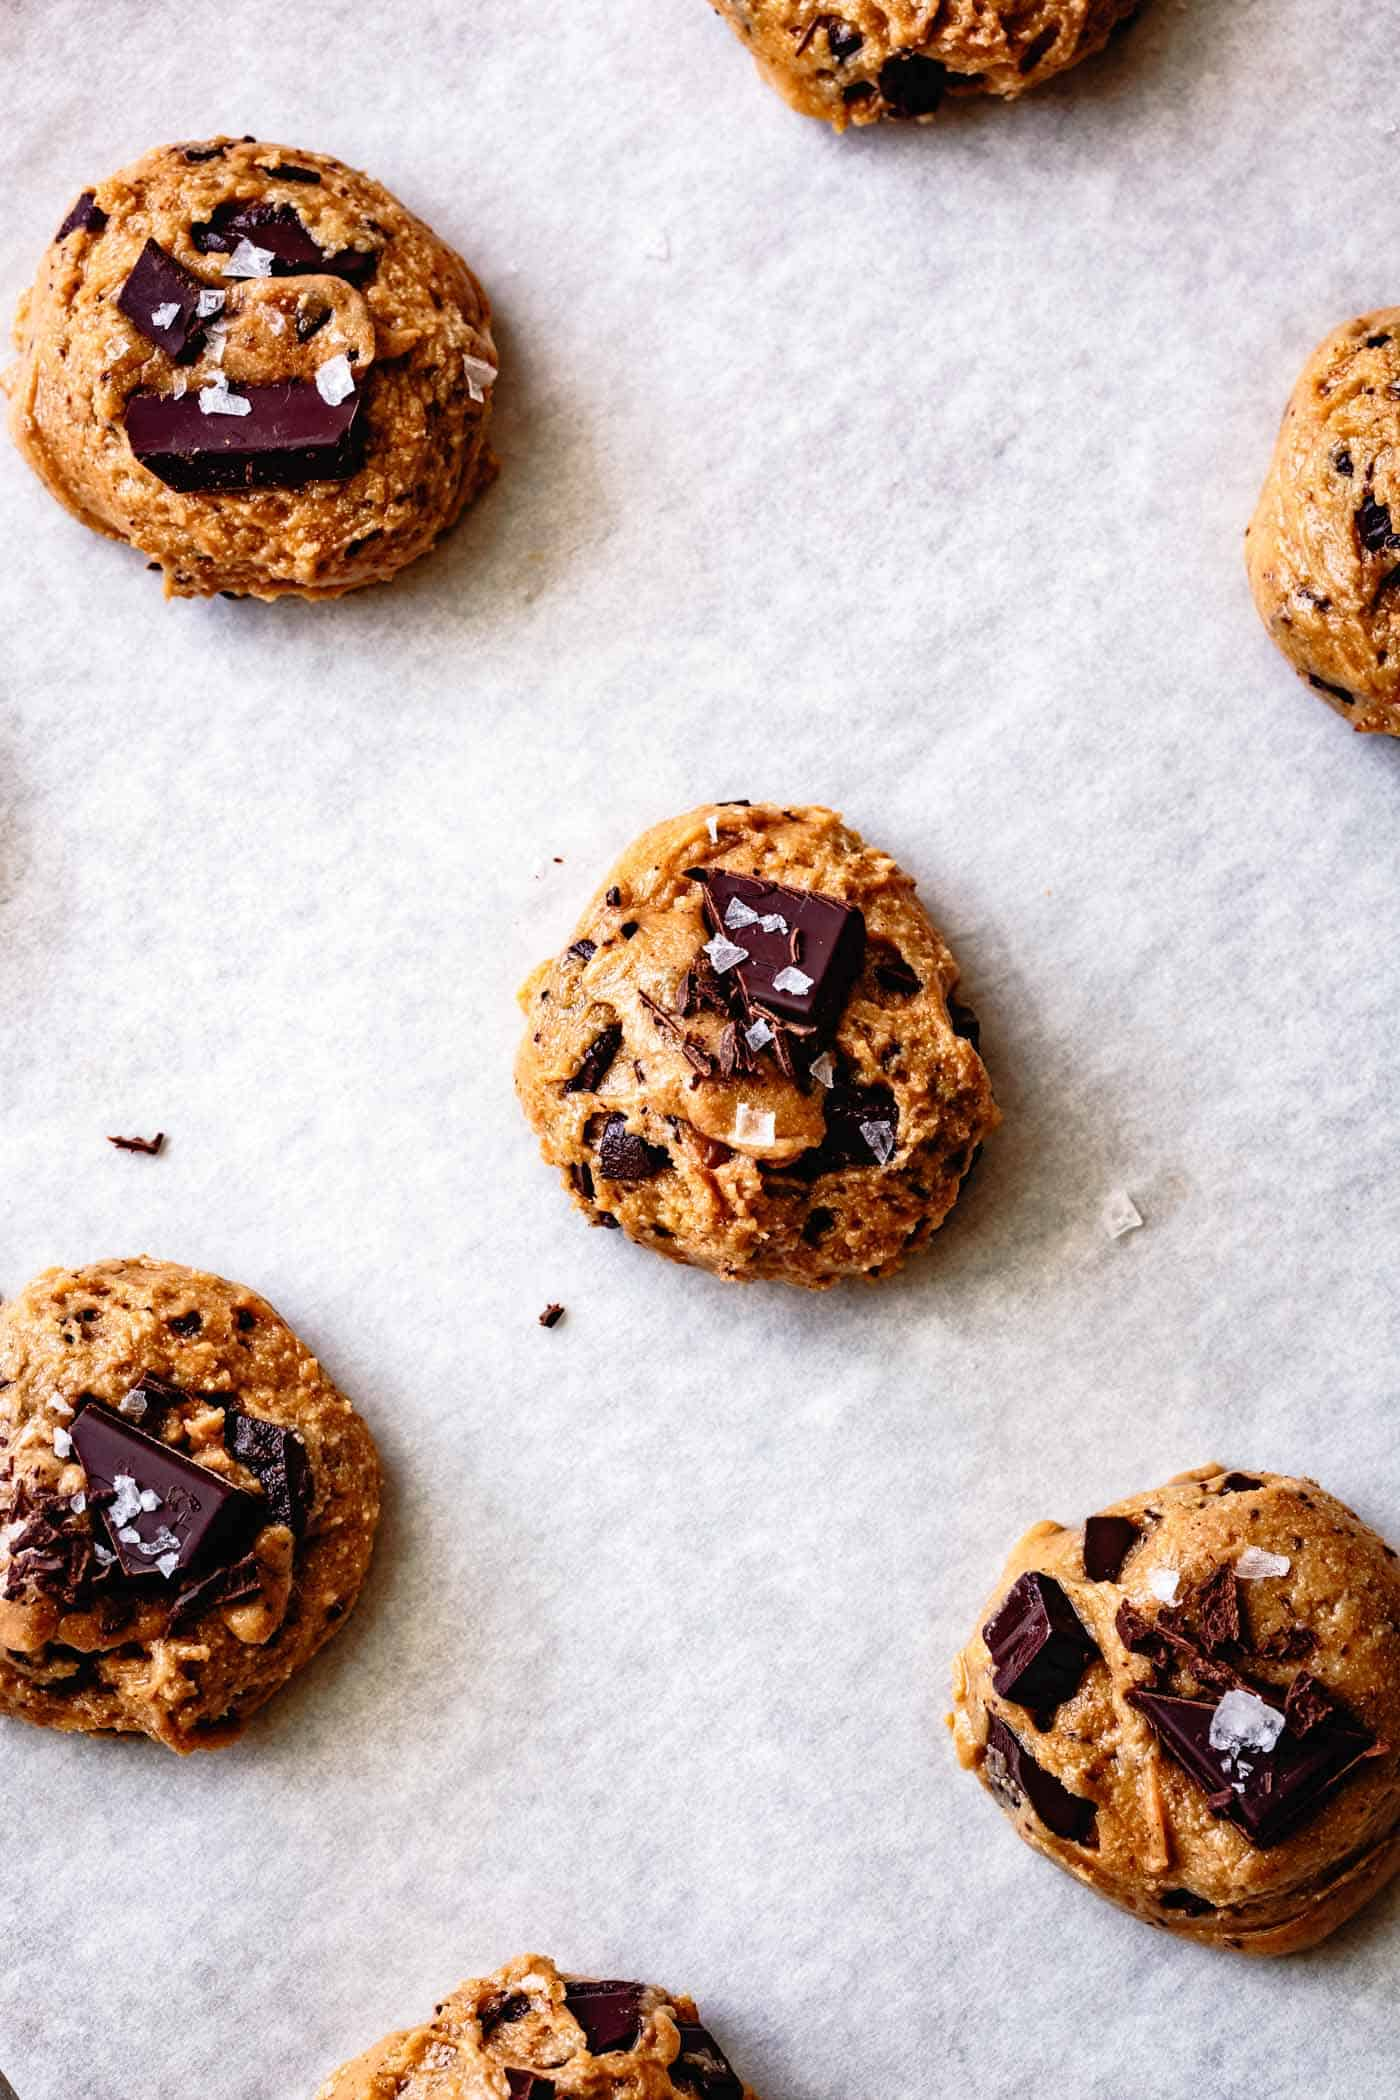 vegan paleo chocolate chip cookies ready to bake on a cookie sheet